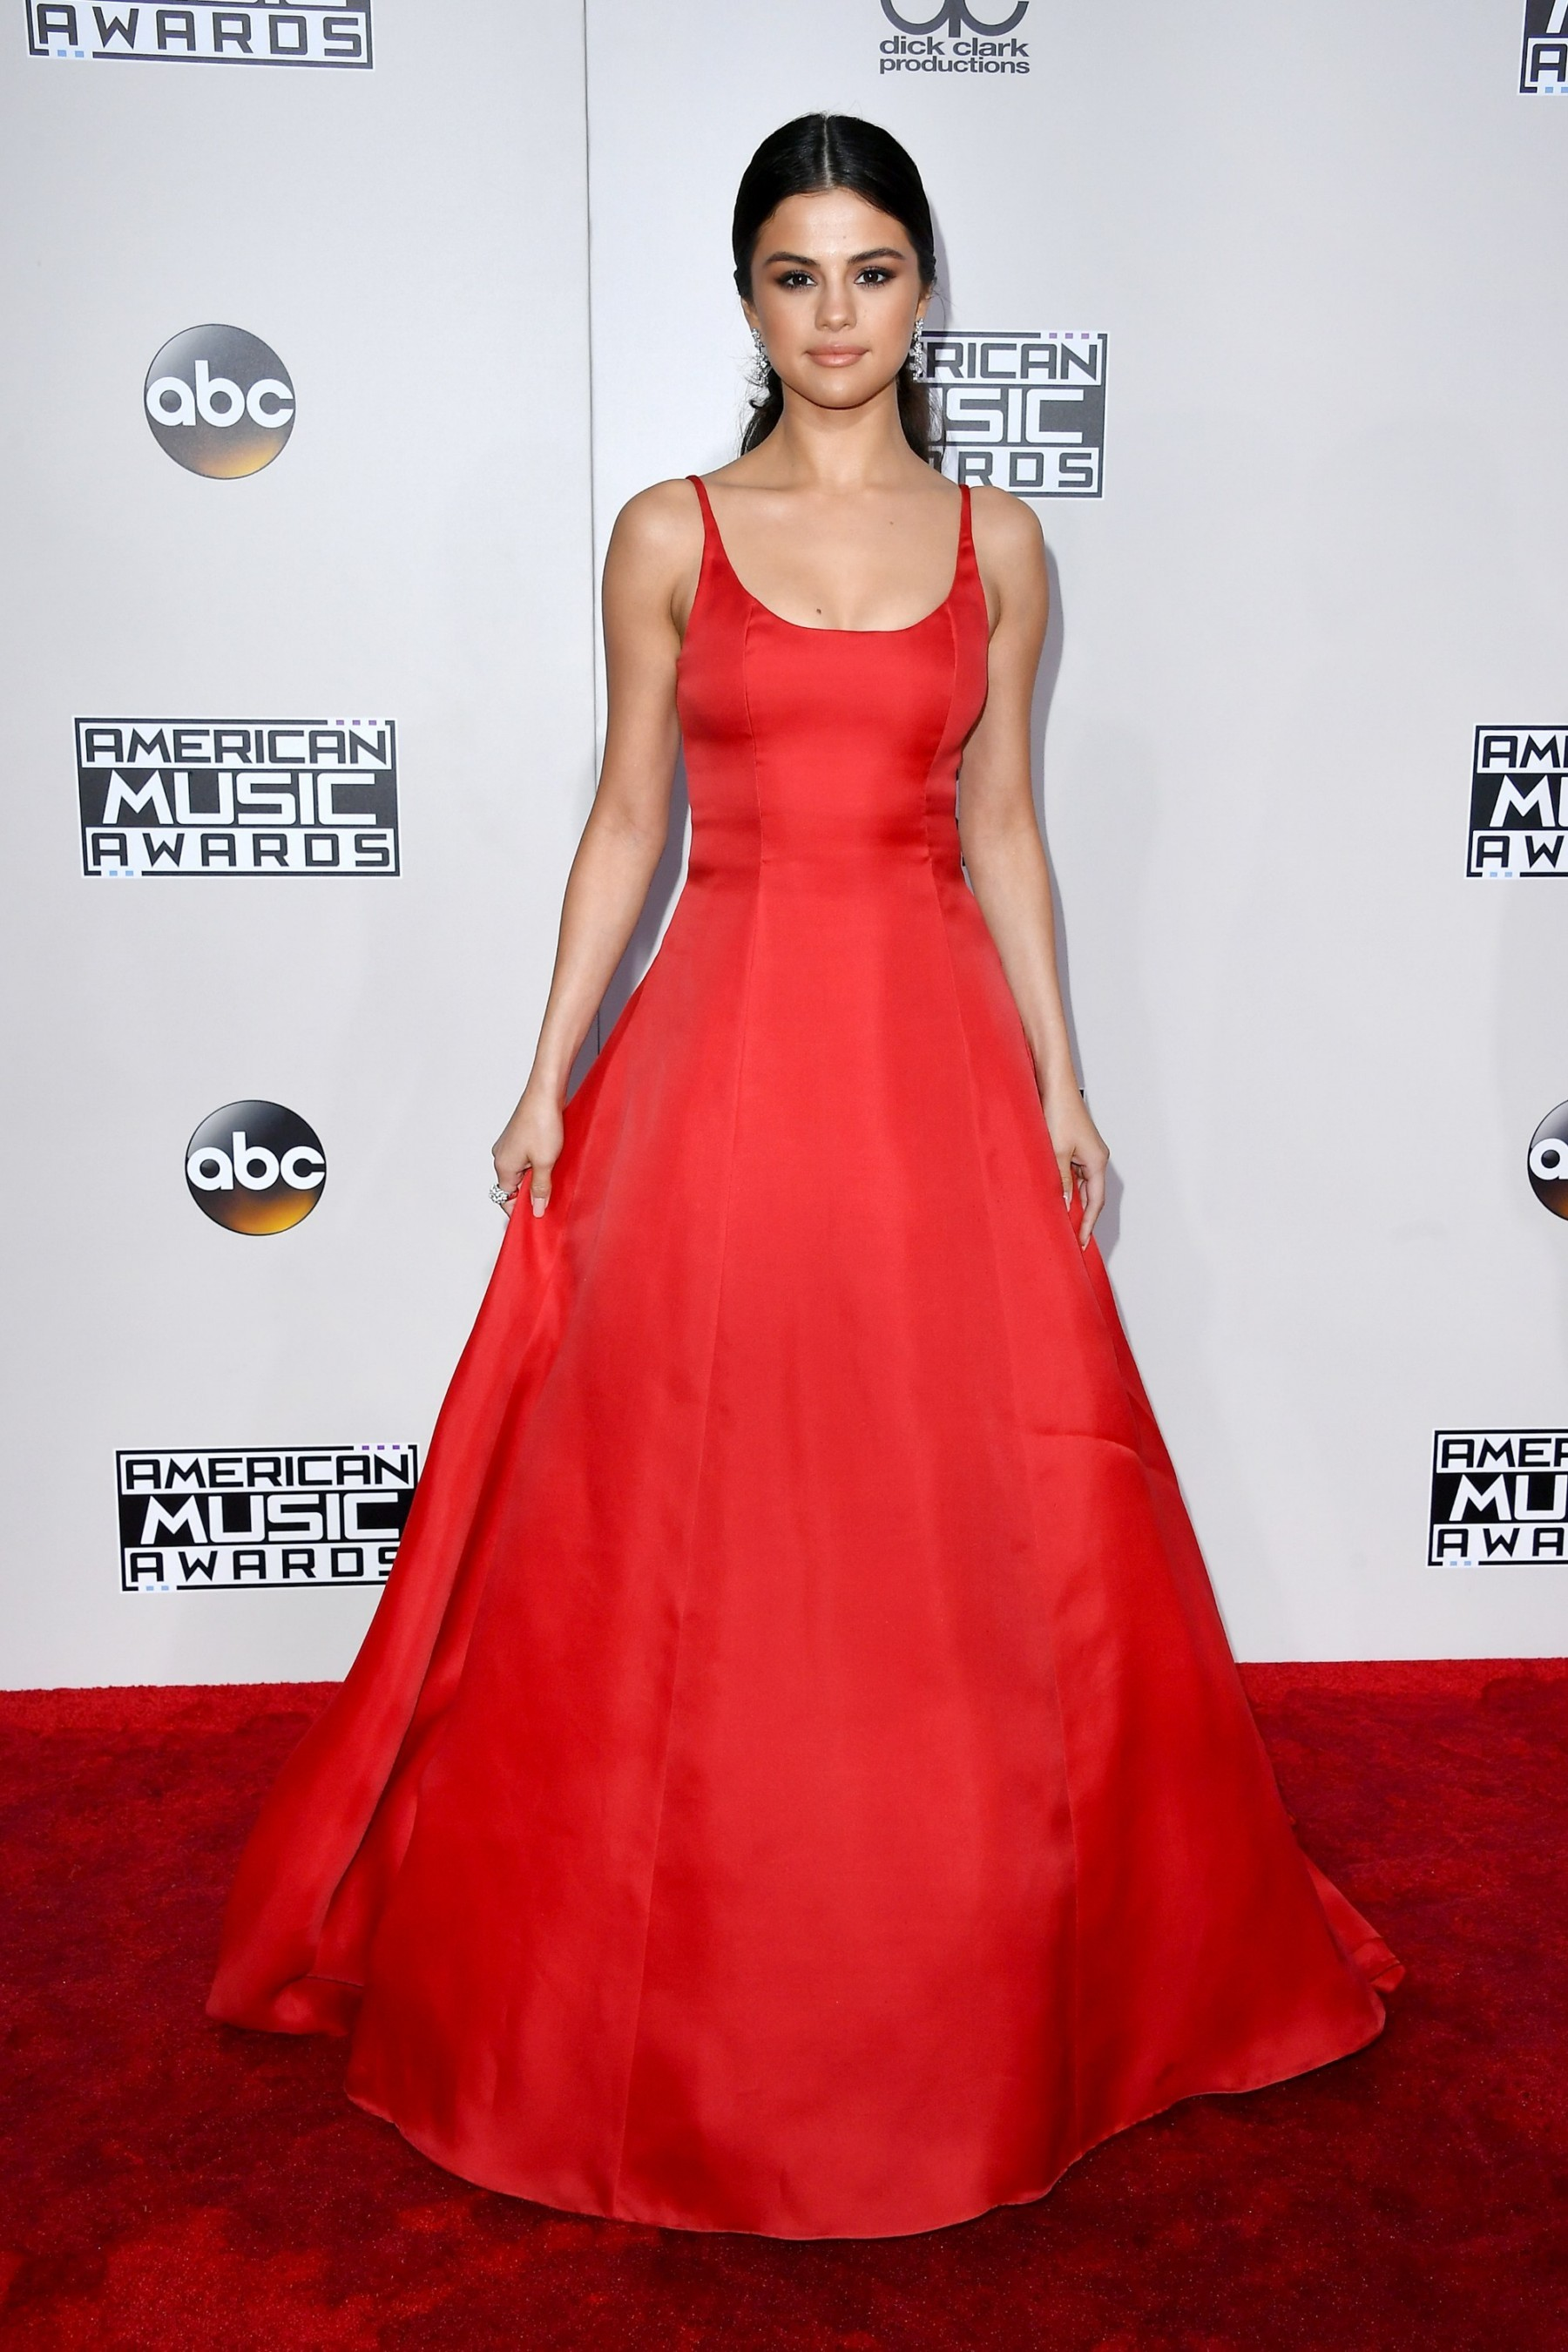 Selena Gomez or Alia Bhatt: Who looks HOT in red gown? 2